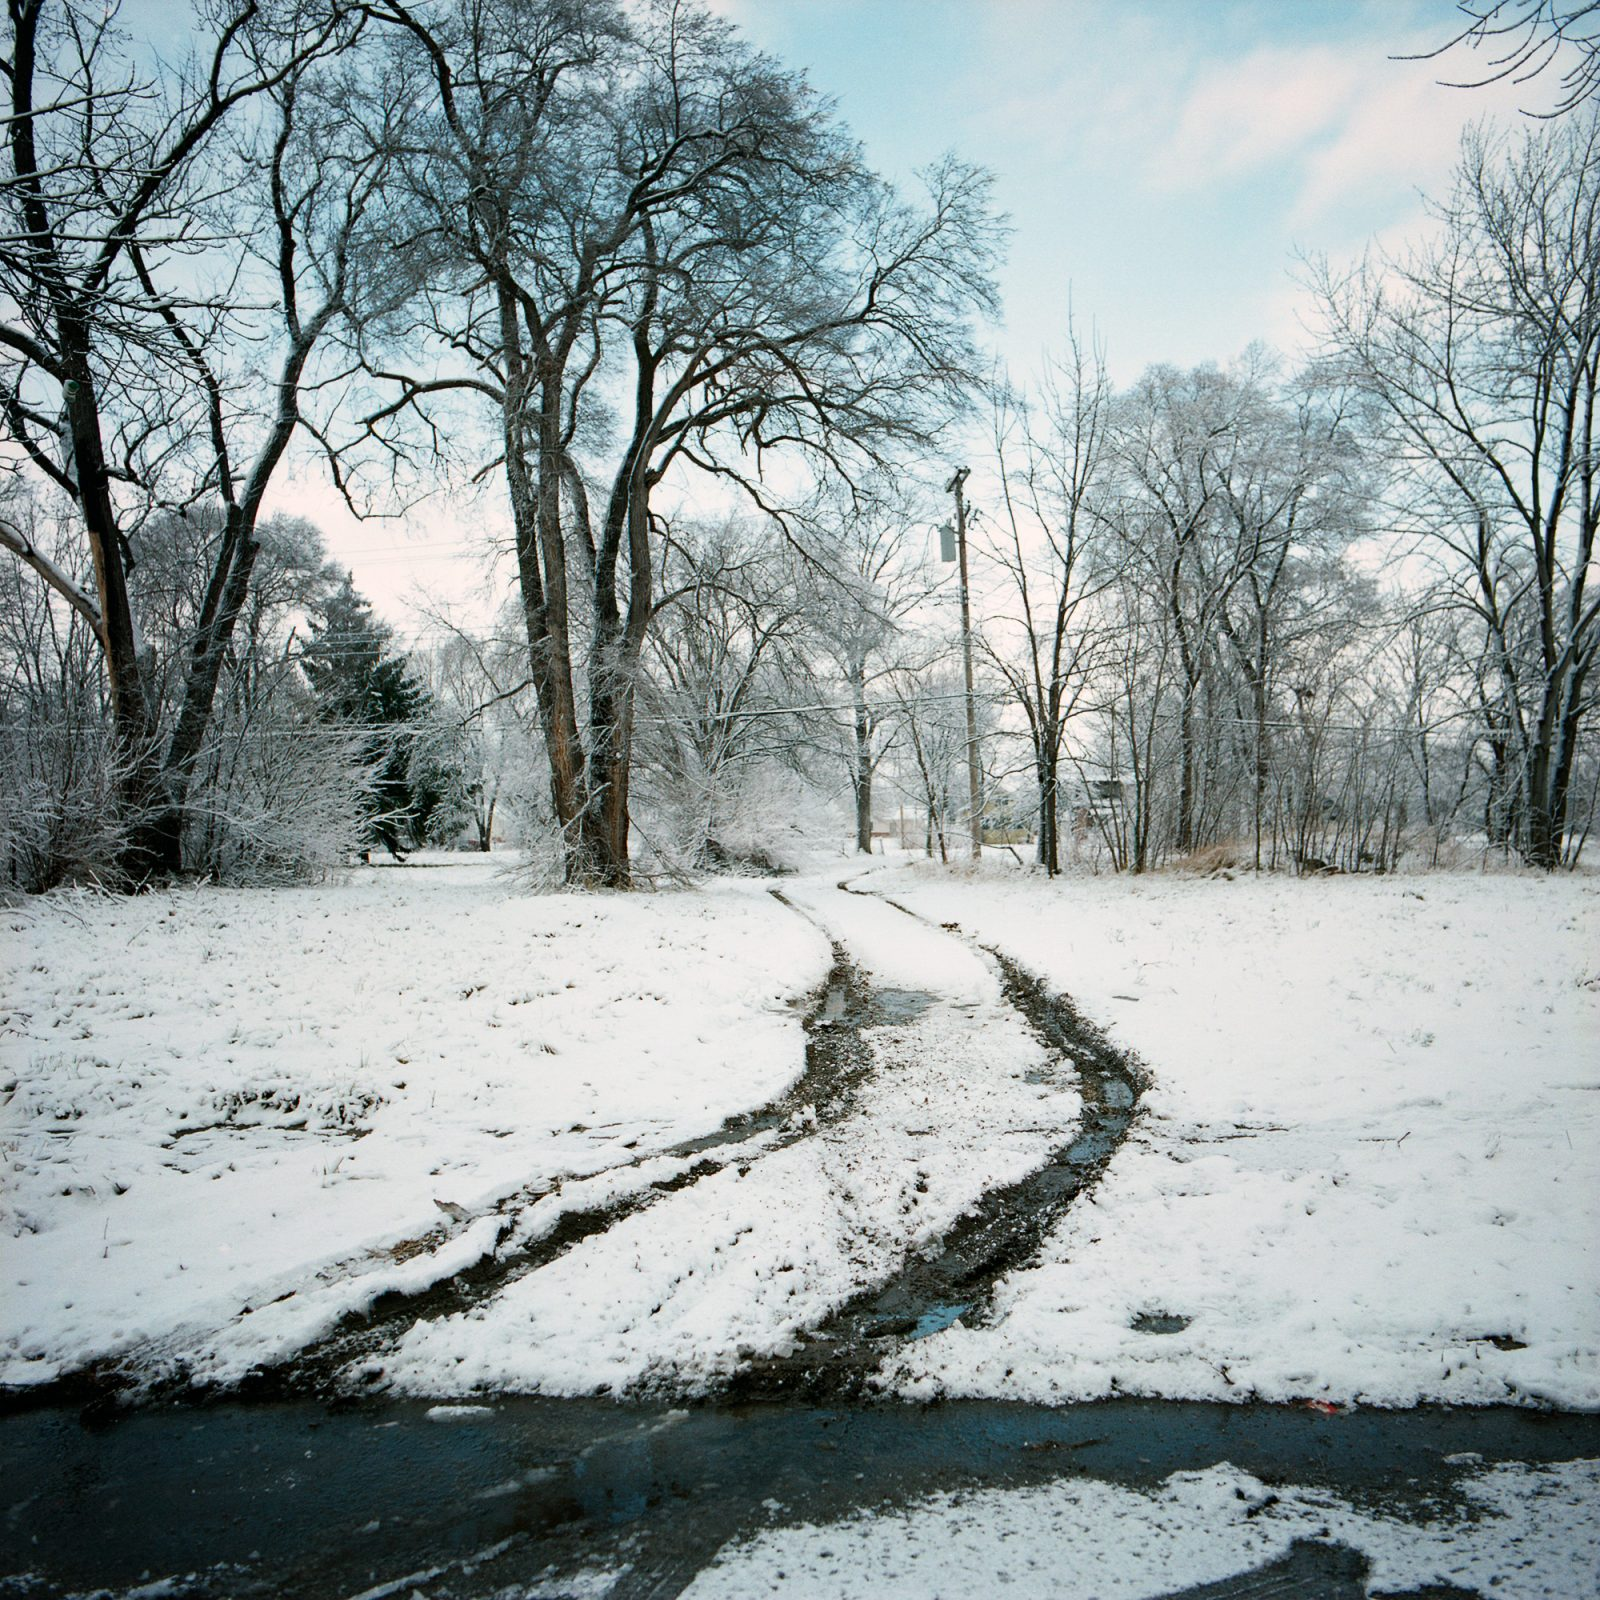 Tire tracks in snow, in abandoned neighborhood in Detroit.